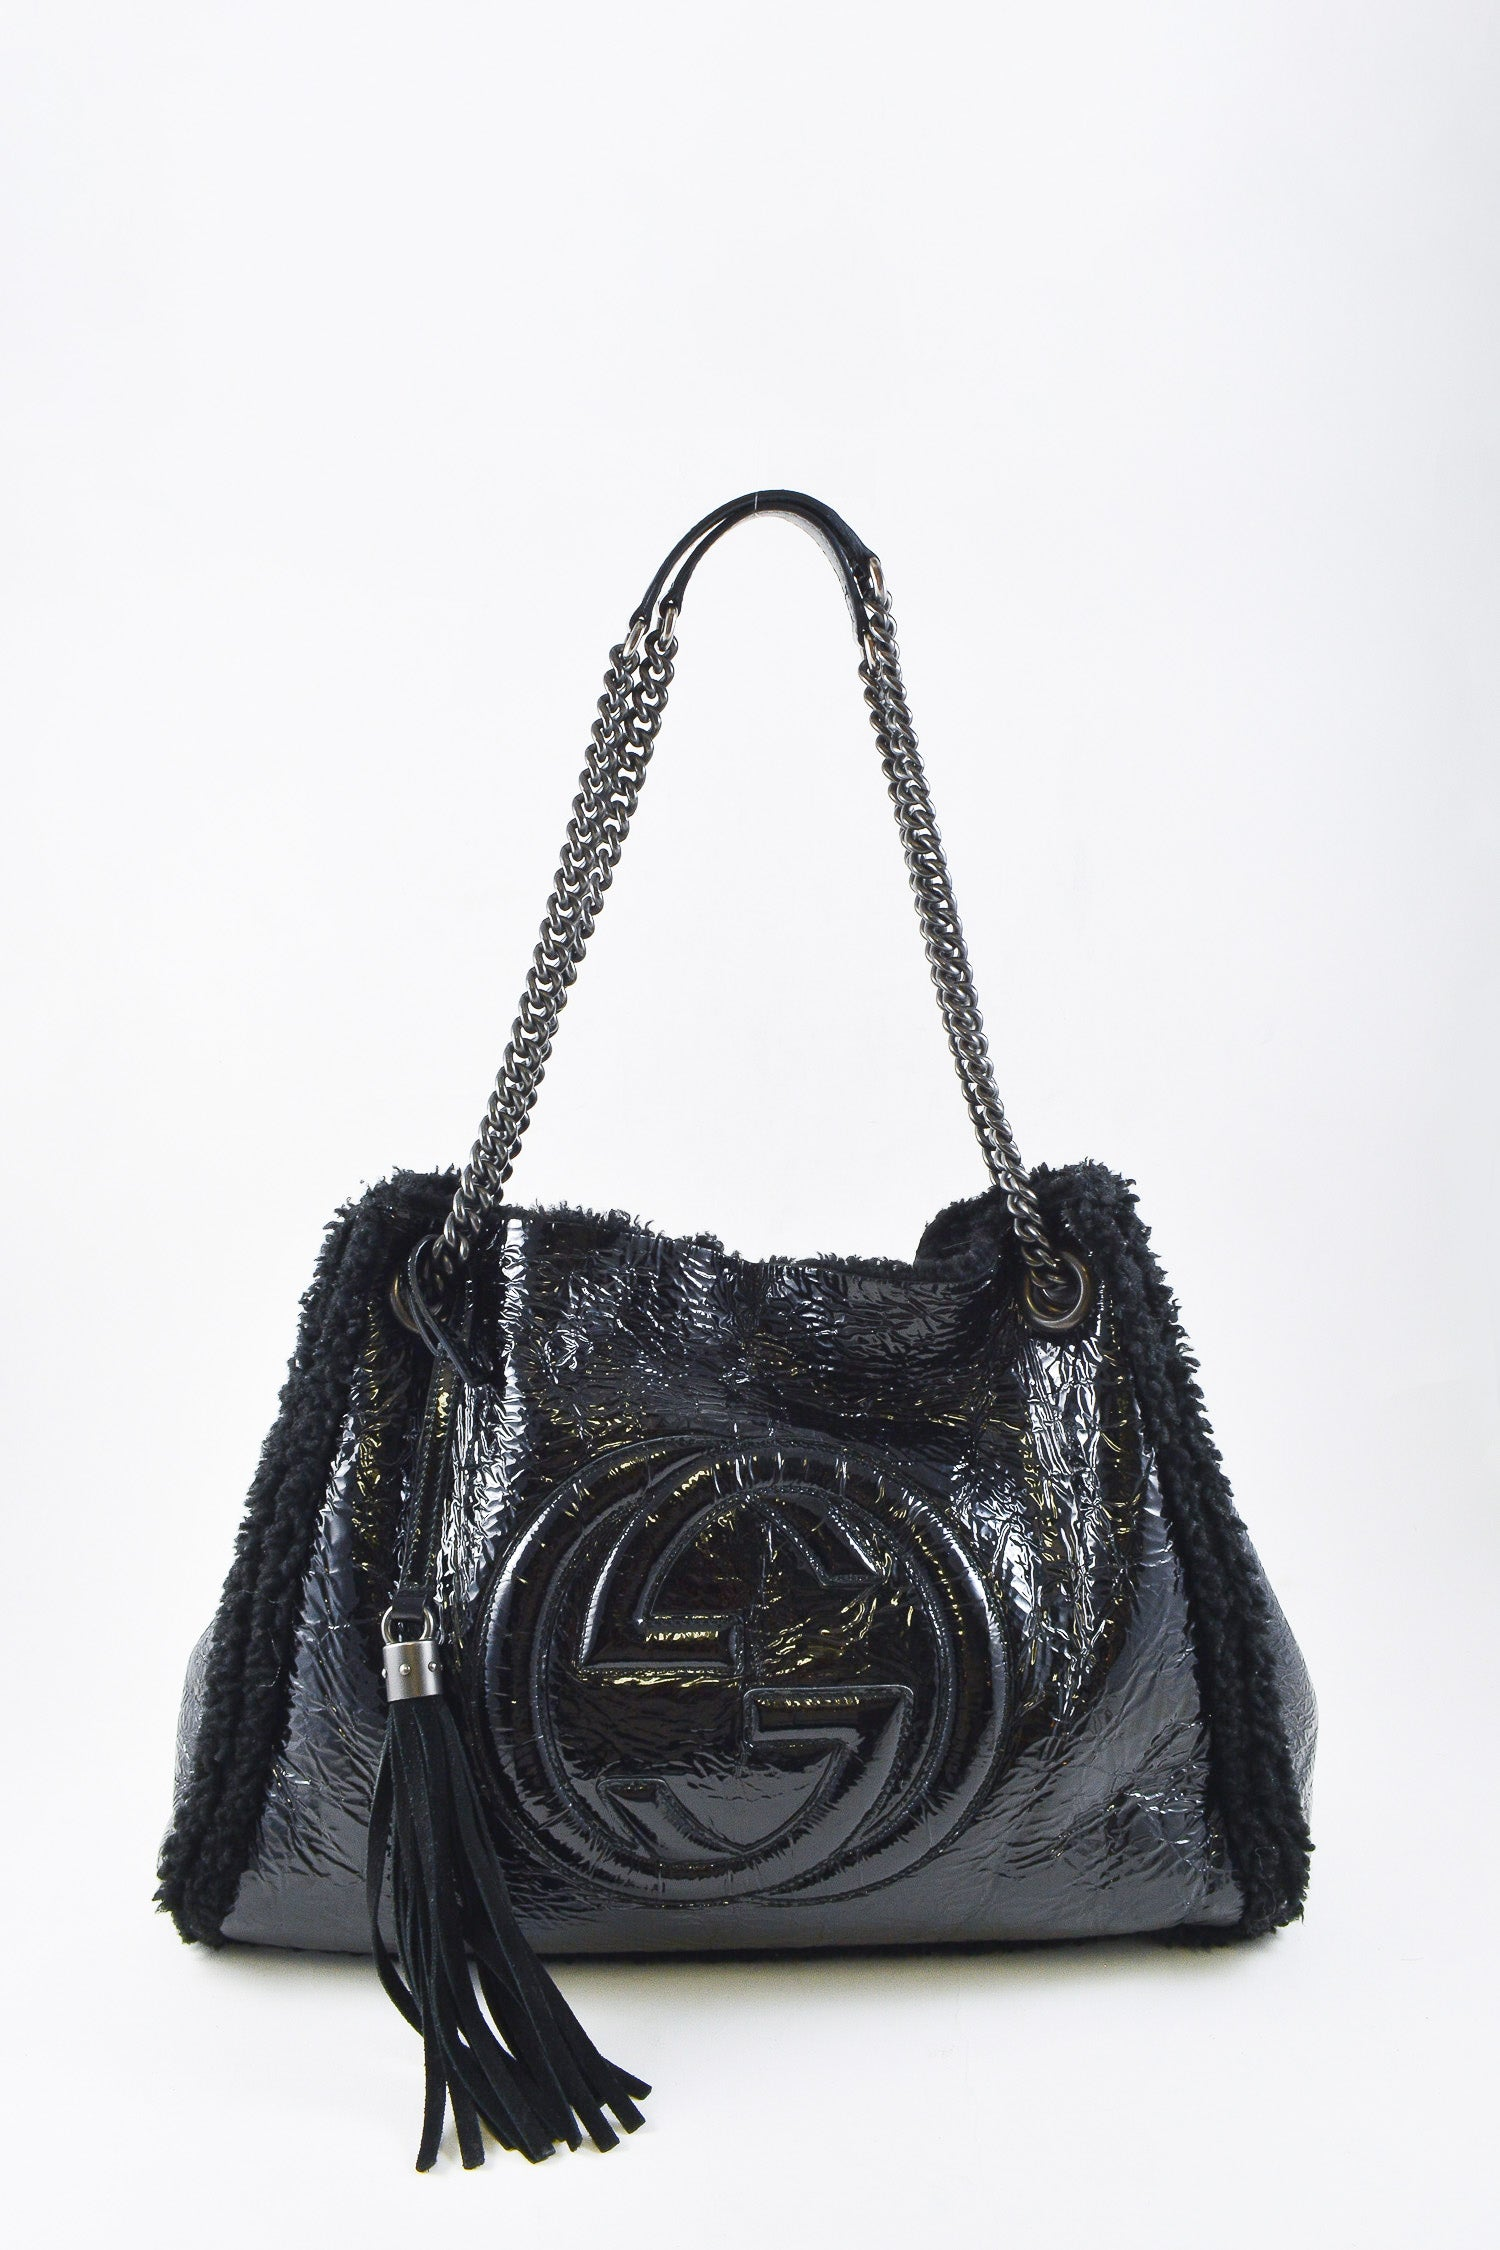 Gucci Medium Black Sherpa Soho Chain Shoulder Bag